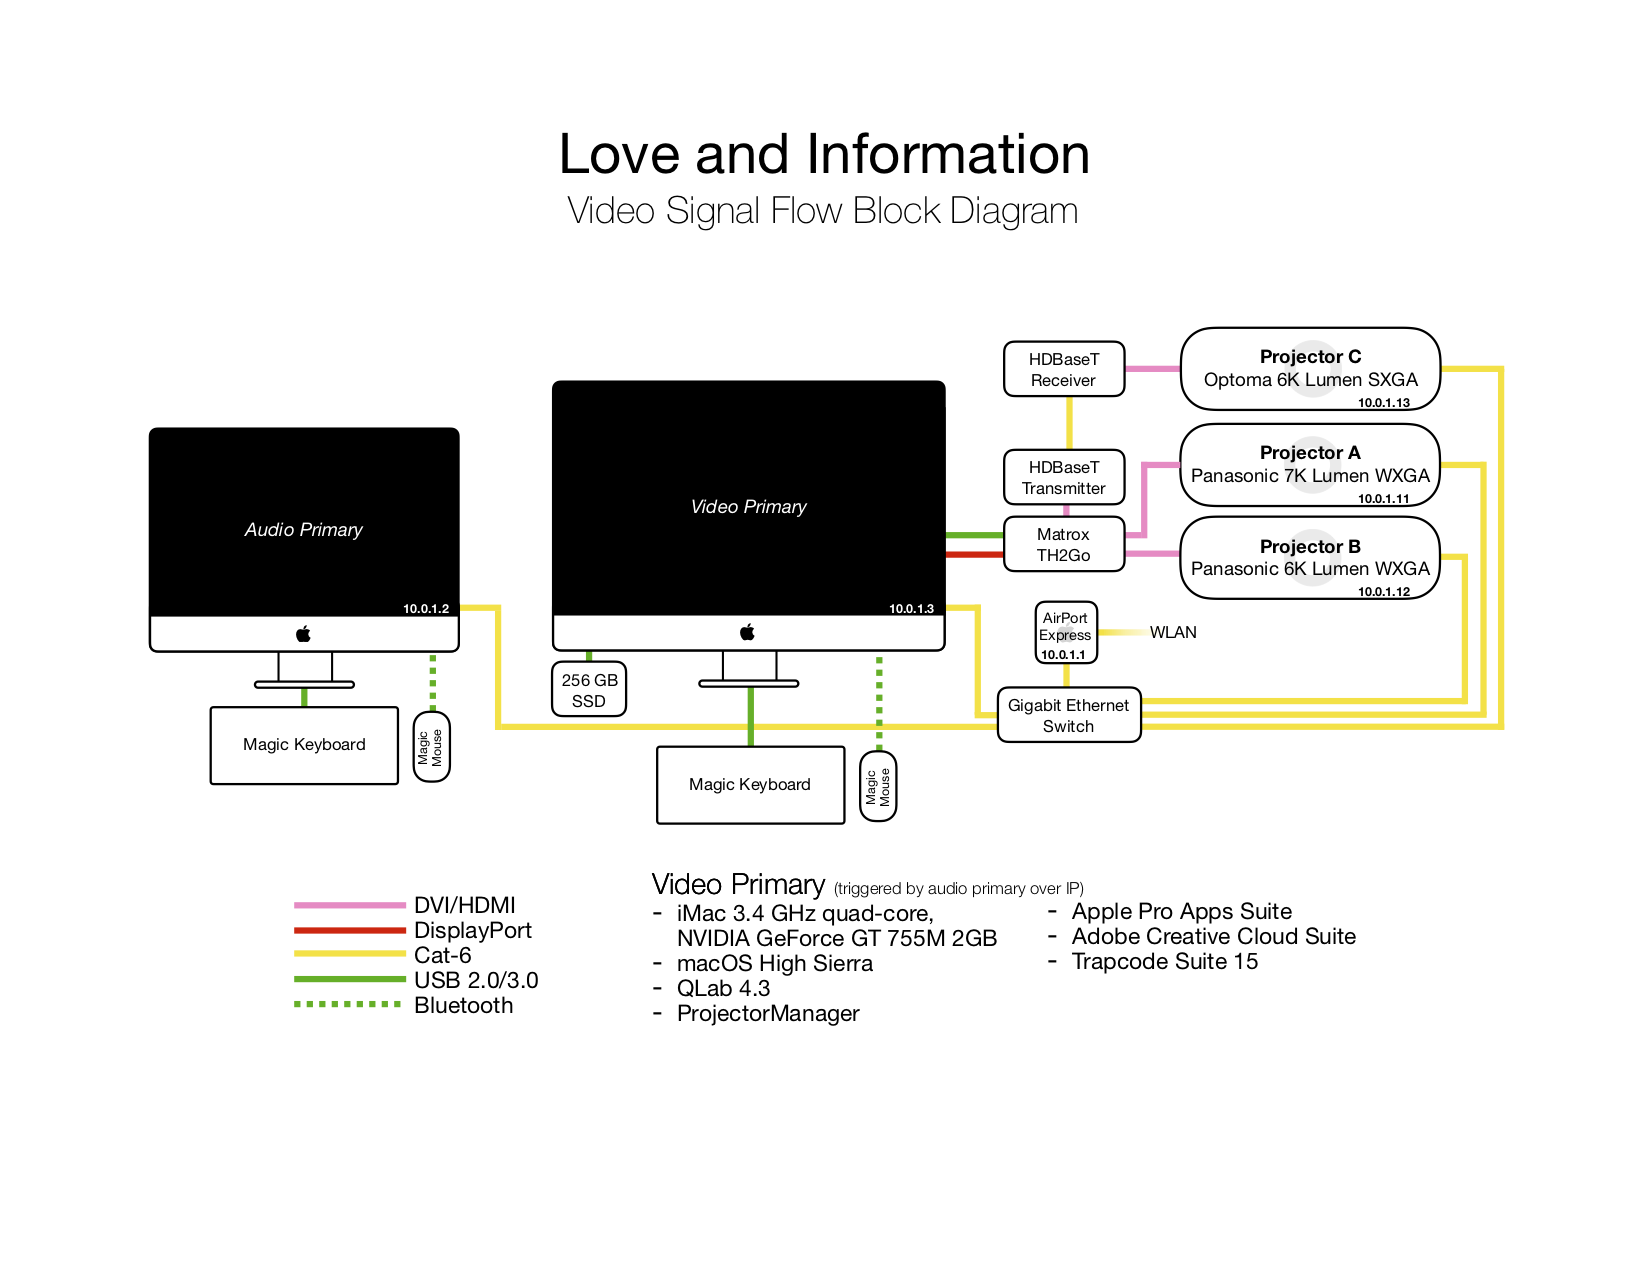 jackson-cobb-design-love-information-block-diagram.png